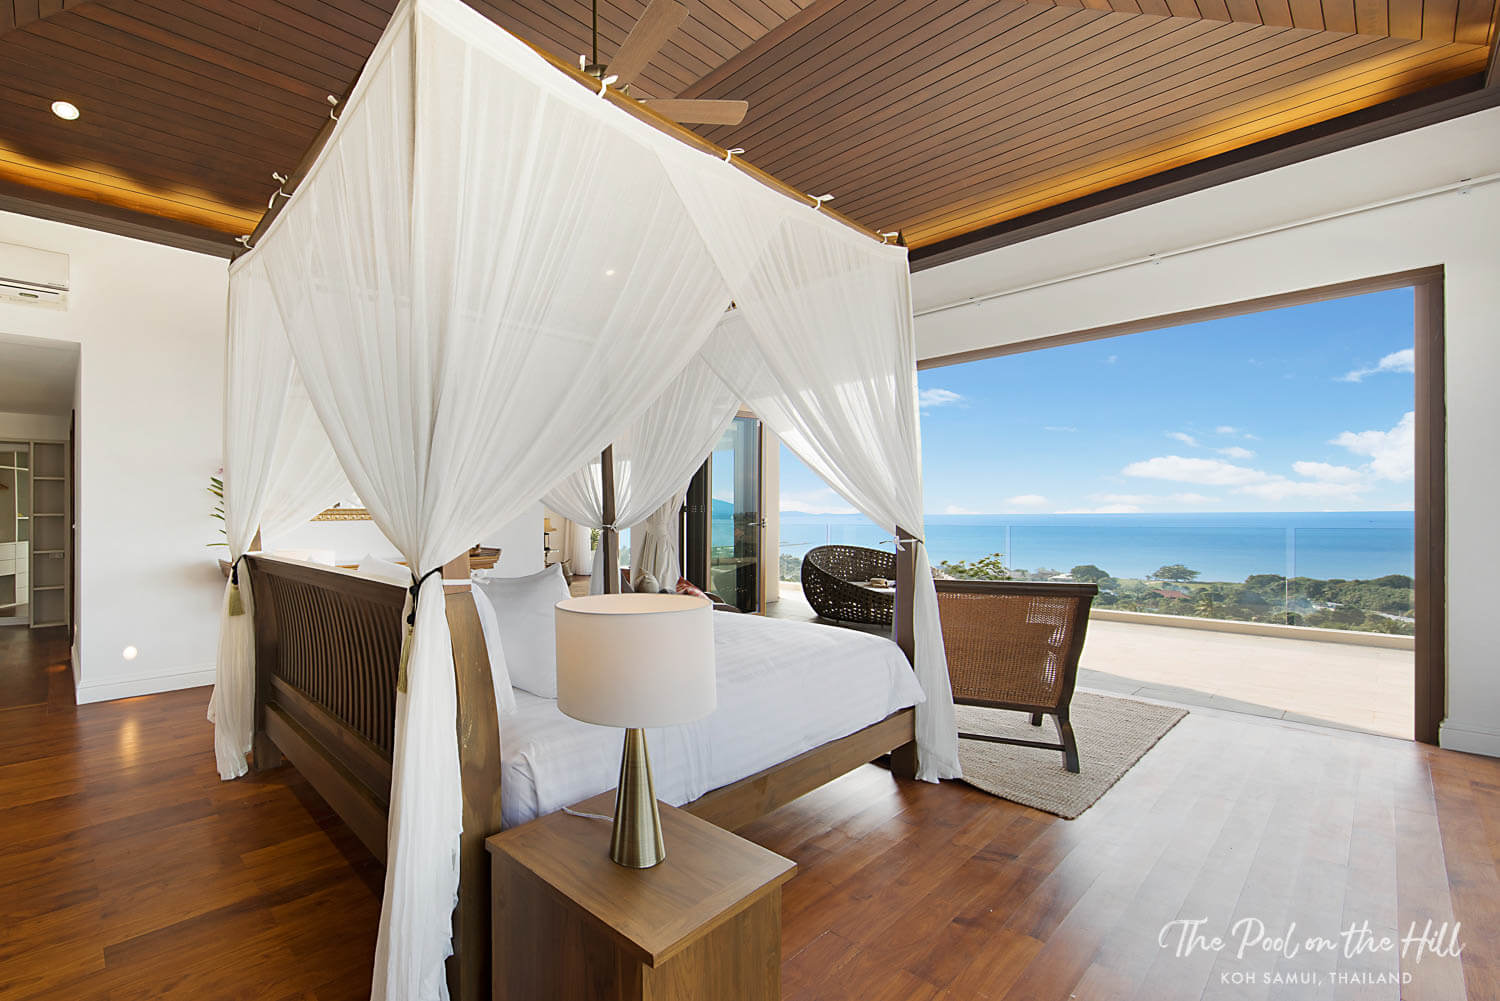 Five–Bedroom Private Villa in Koh Samui, Thailand: The large en suite master bathroom at The Pool on the Hill has double vanities, a large soaker bath tub and ocean views